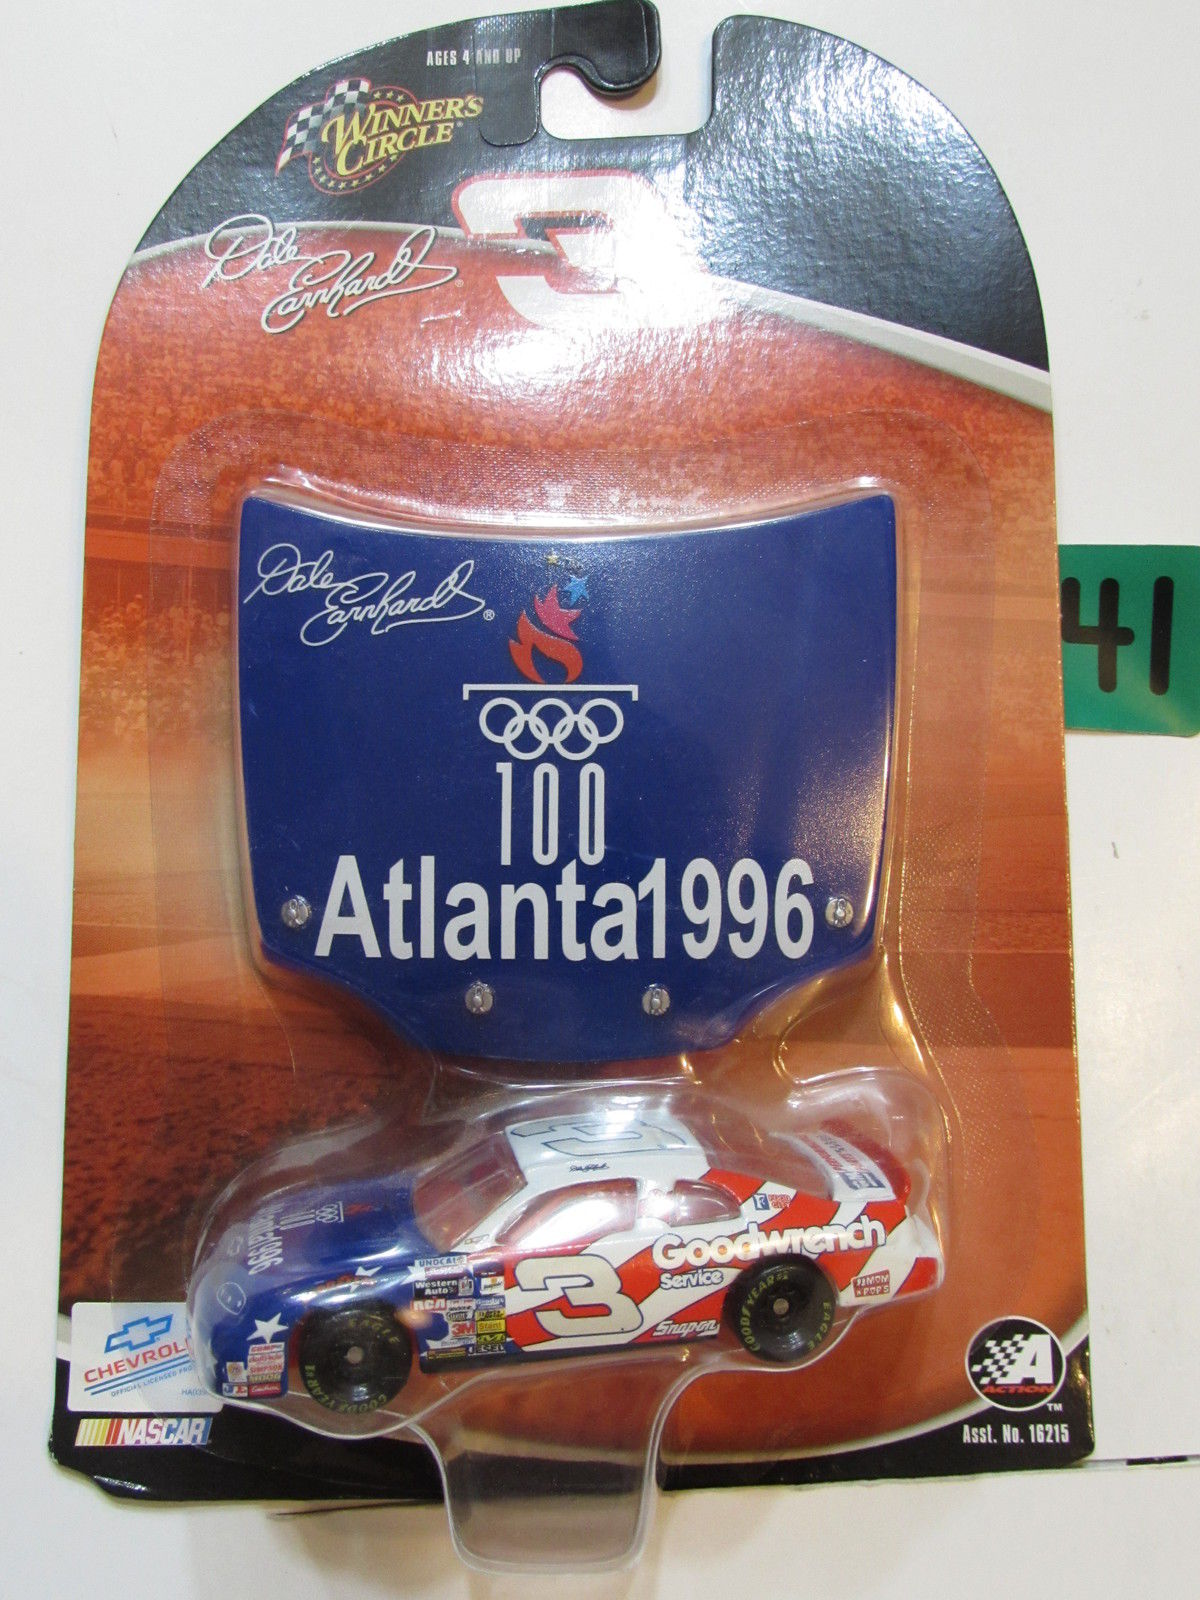 NASCAR WINNER'S CIRCLE DALE EARNHARDT #03 ATLANTA 1996 E+